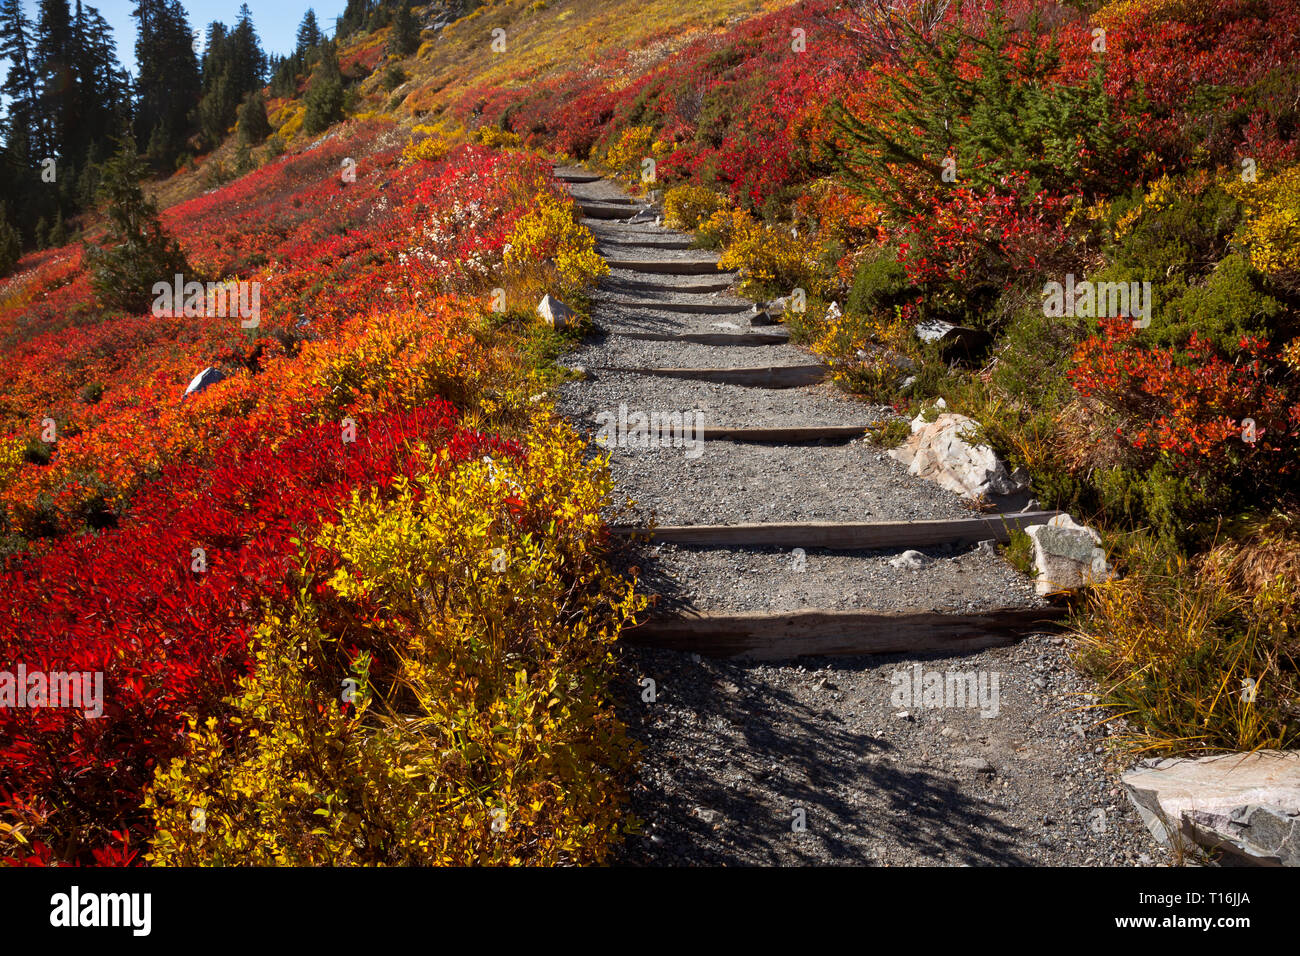 WA16016-00...WASHINGTON- Hikers walking across a hillside covered with brilliant fall color on the Skyline Trail in Mount Rainier National Park. Stock Photo